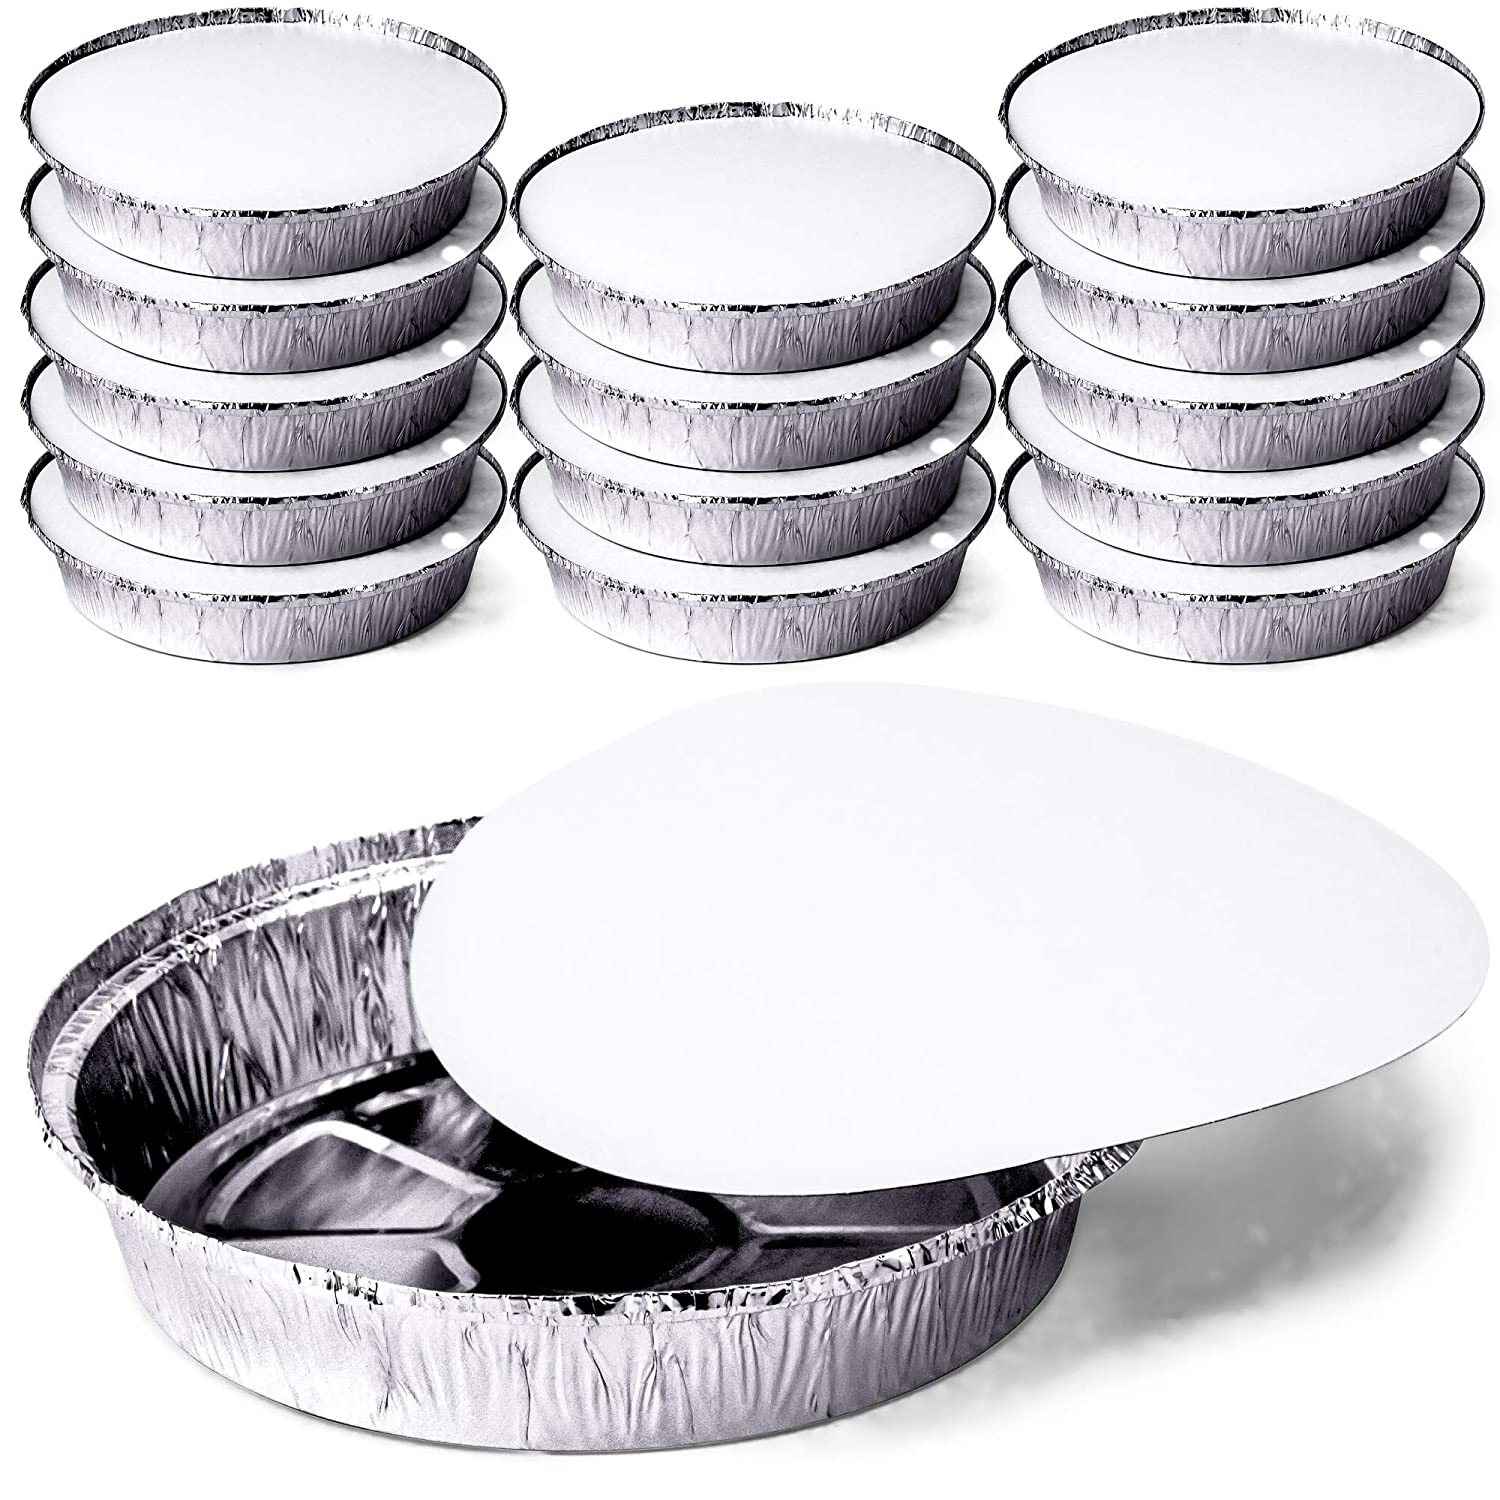 Roasting Perfect for Reheating to-Go Containers Meal Prep Heavy Duty Tin Foil Pans Environmentally Friendly Pack of 14 Baking DecorRack Round 9 Inch Aluminum Pans with Flat Board Lid